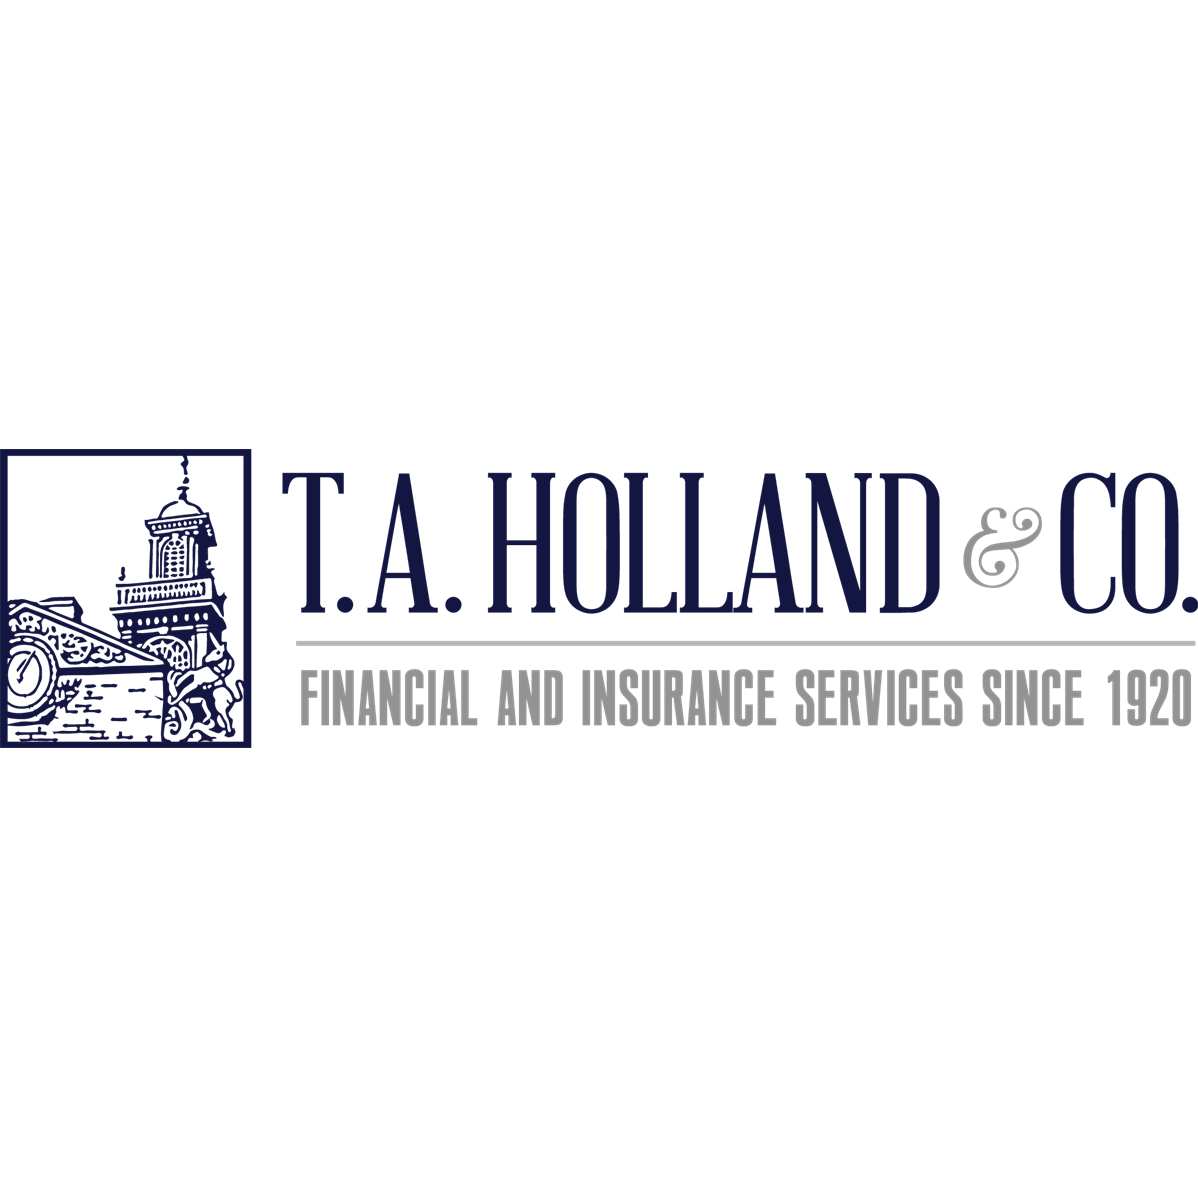 T. A. Holland & Co.